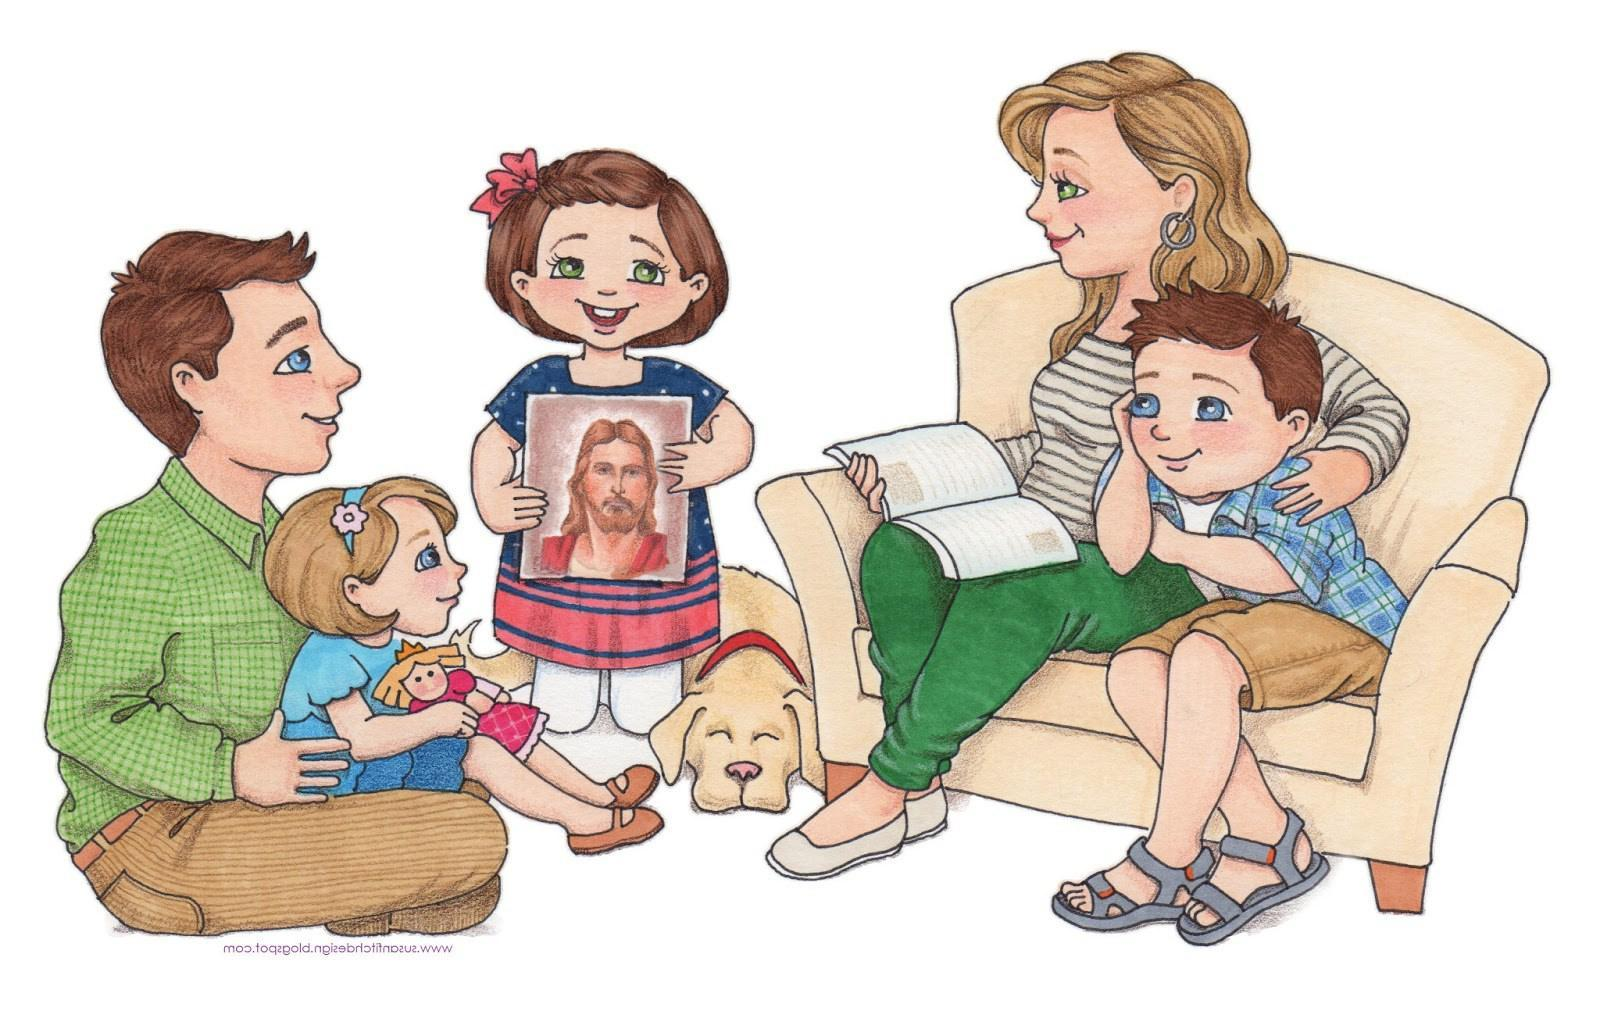 Praying with family clipart 4 » Clipart Portal.